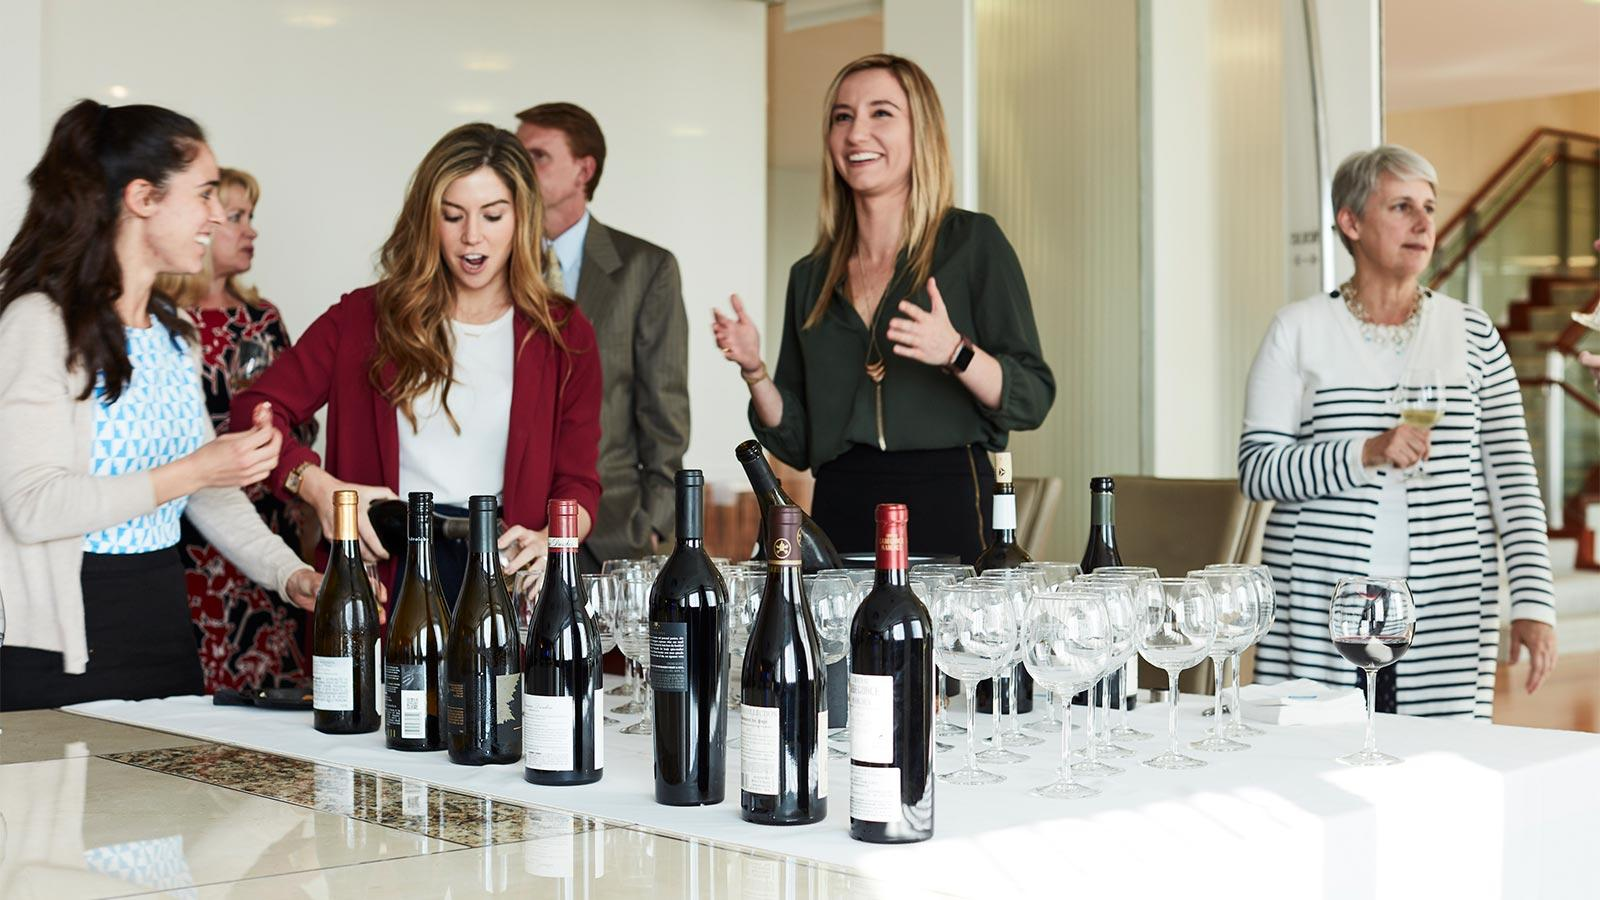 Group of law firm employees gathered for a wine tasting, with bottles and glasses on a table.